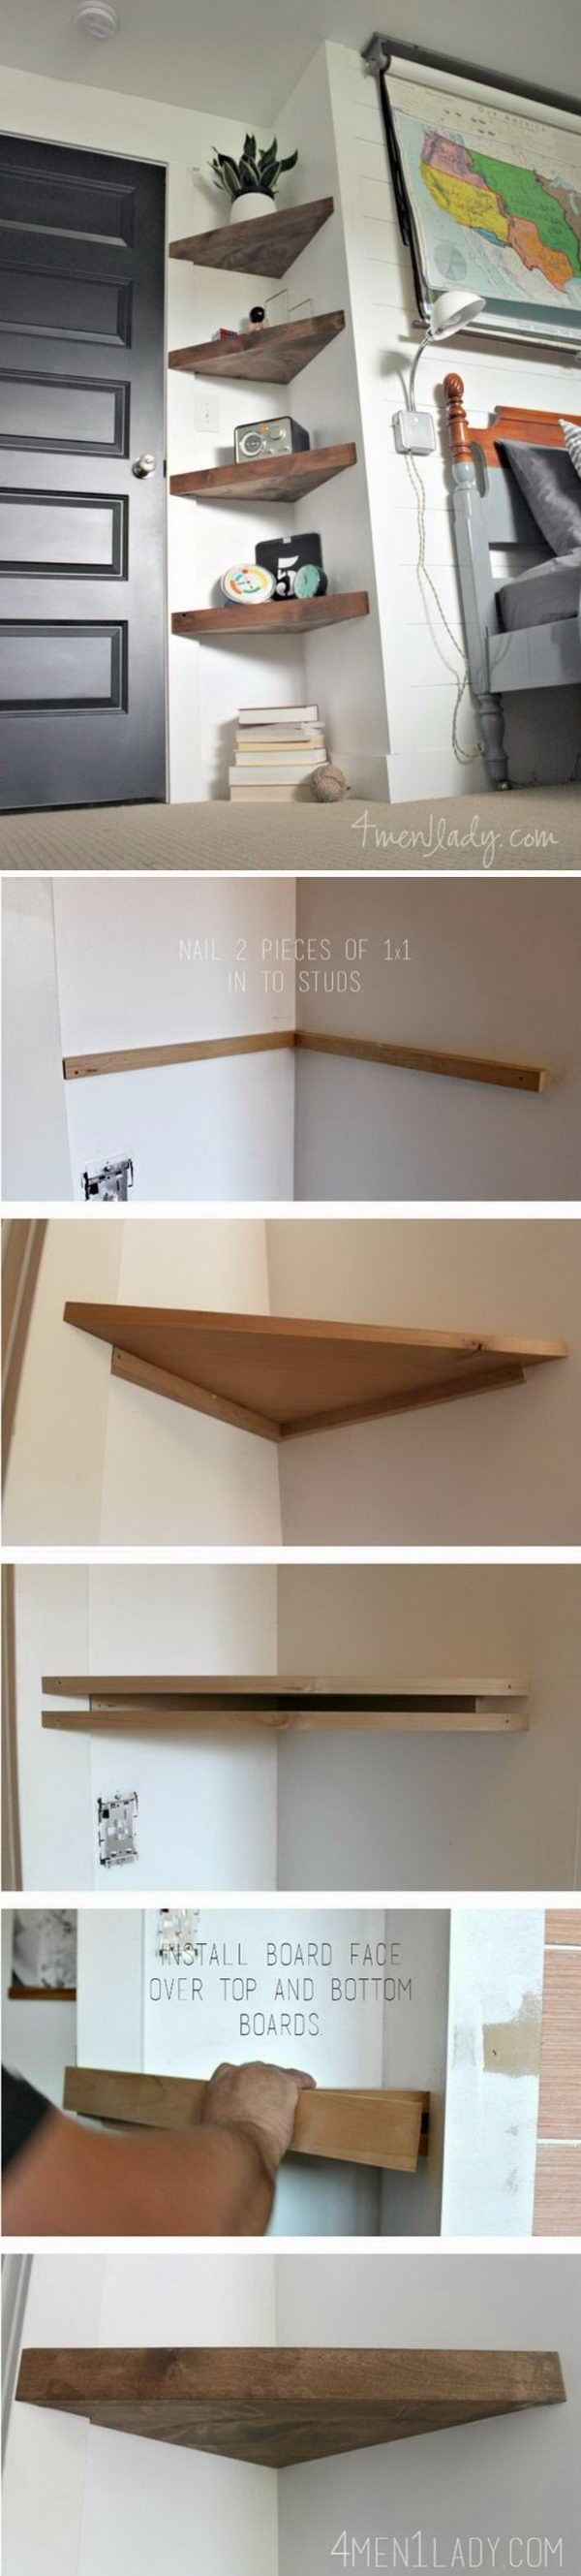 DIY Floating Corner Shelves. Living room idea...